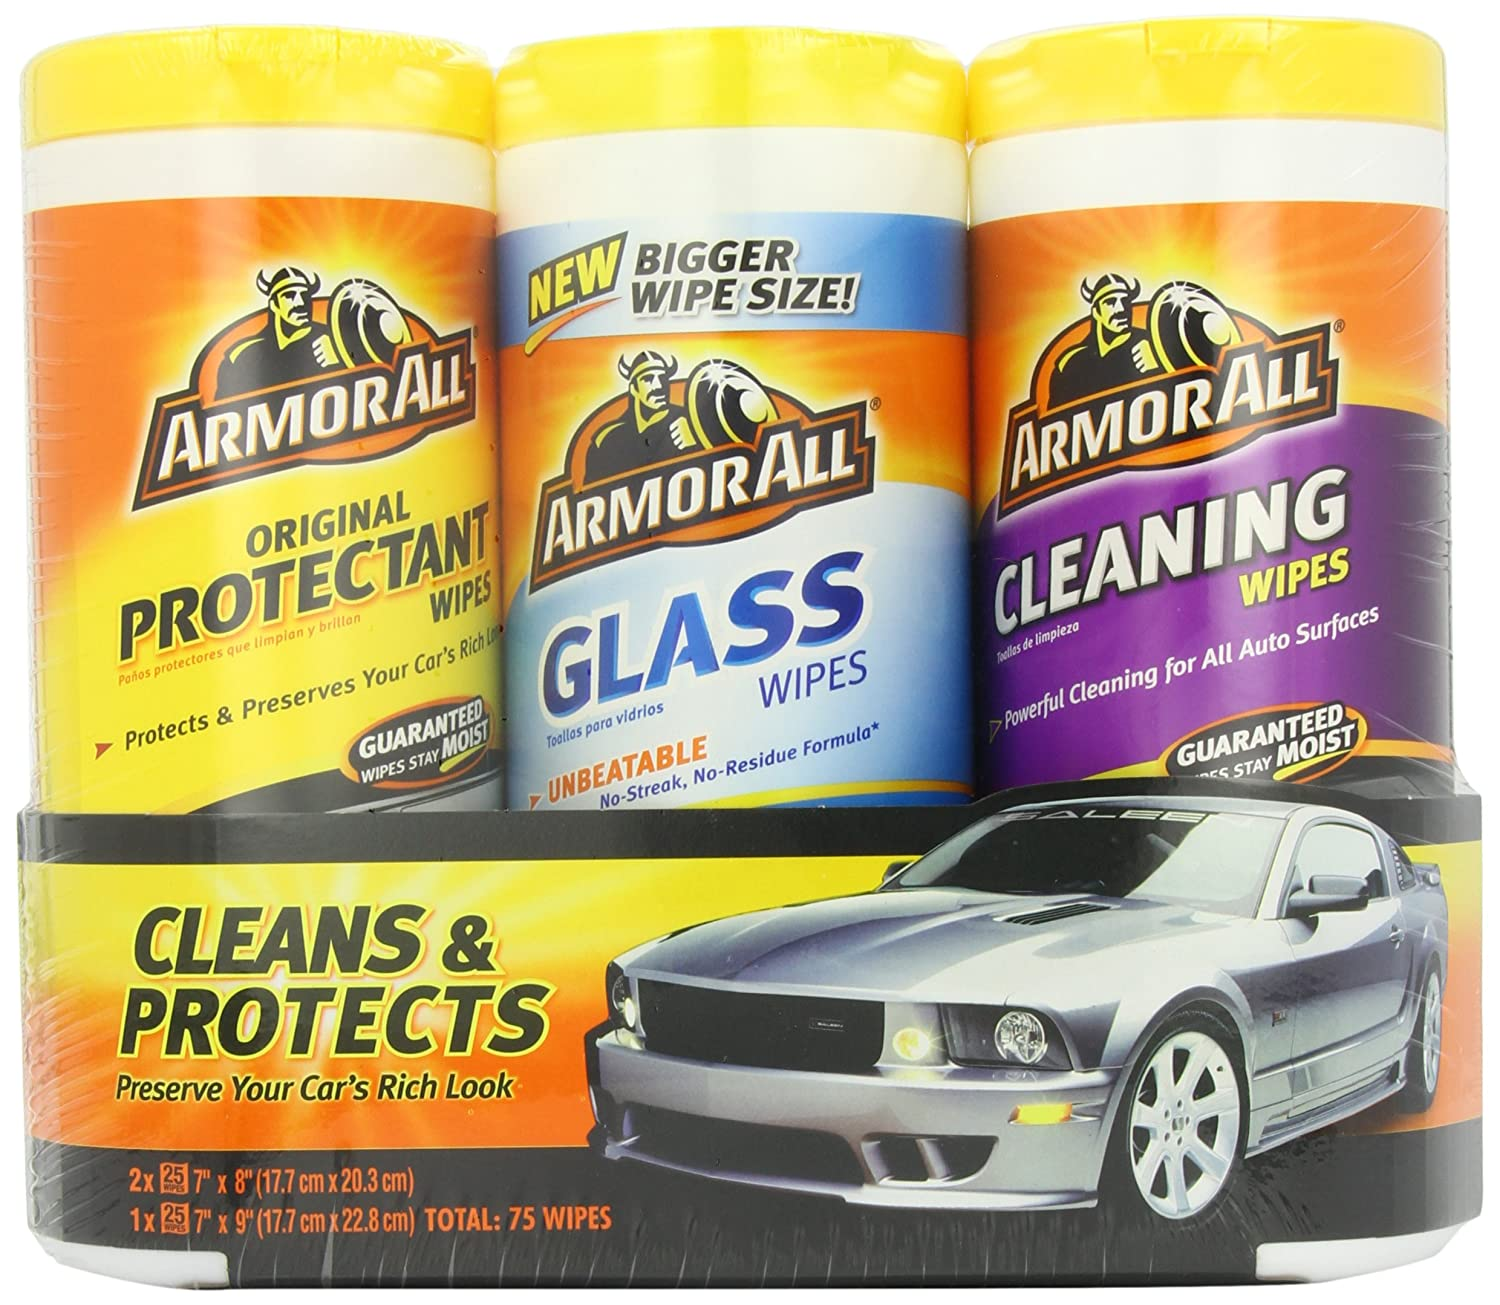 Amazon.c: Armor All Auto Care Cleaning Pack (75 Wipes): Autotive